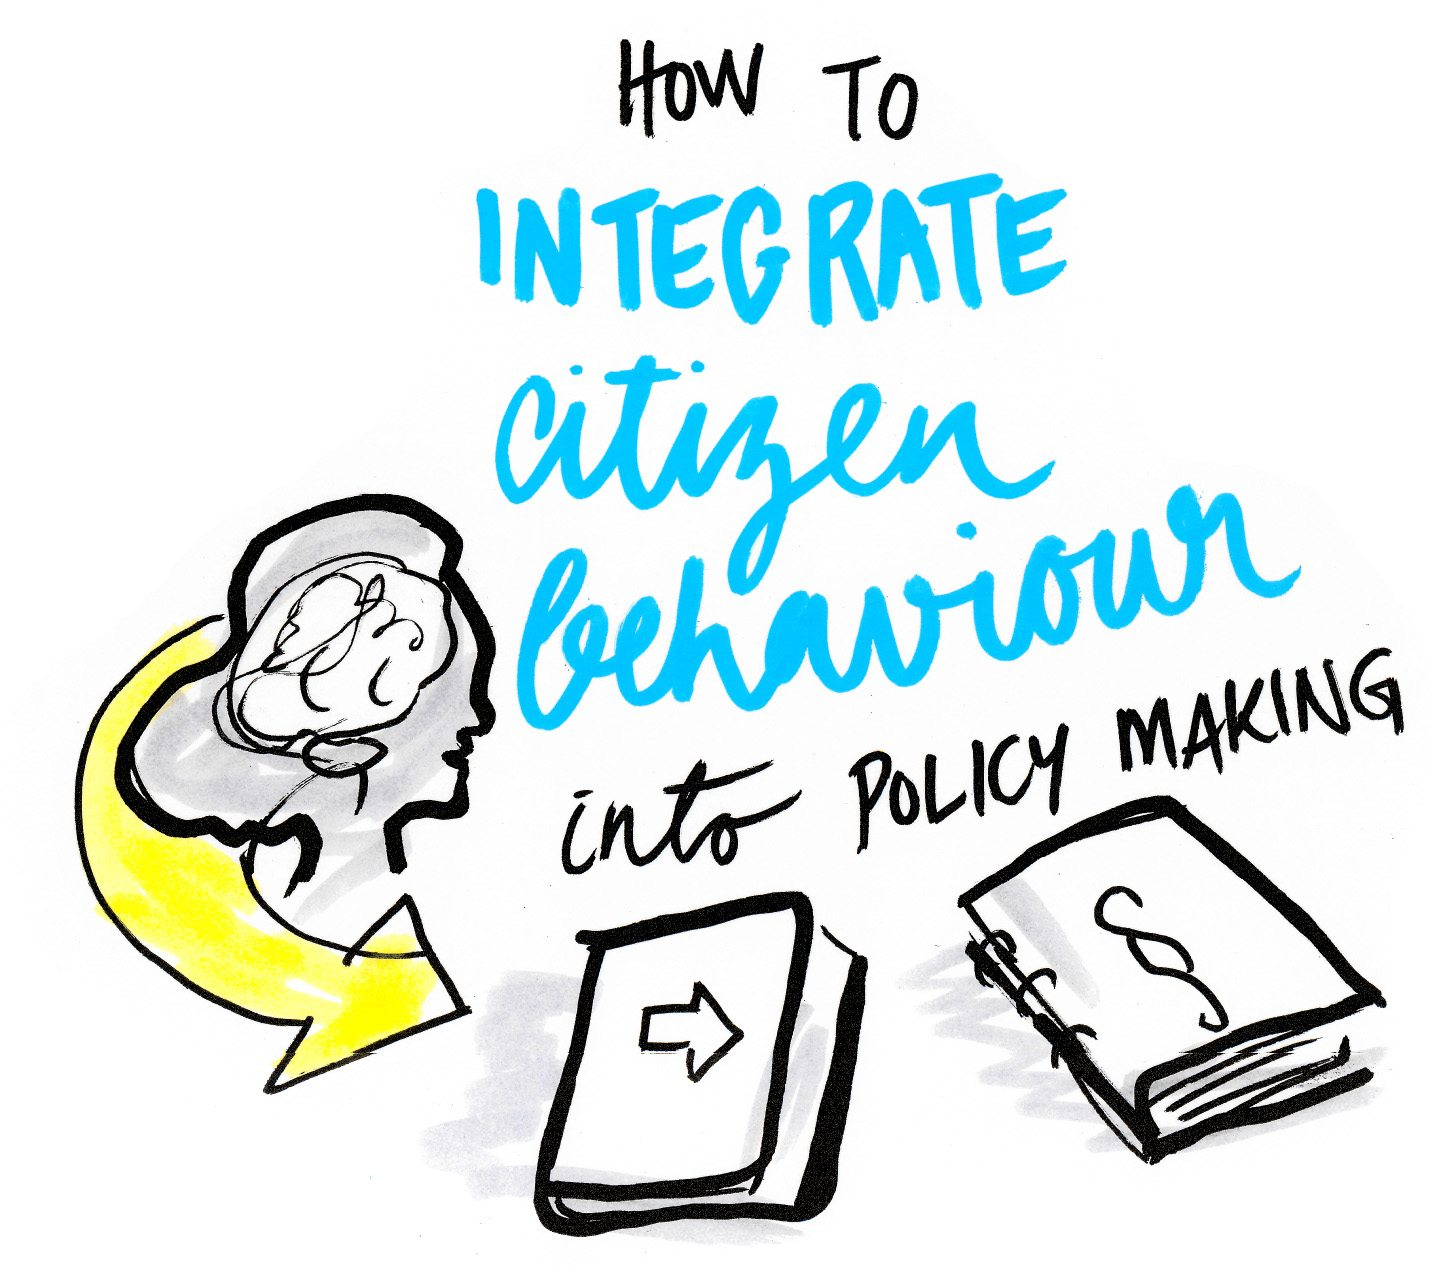 Integrate Citizen Behaviour (Hi)